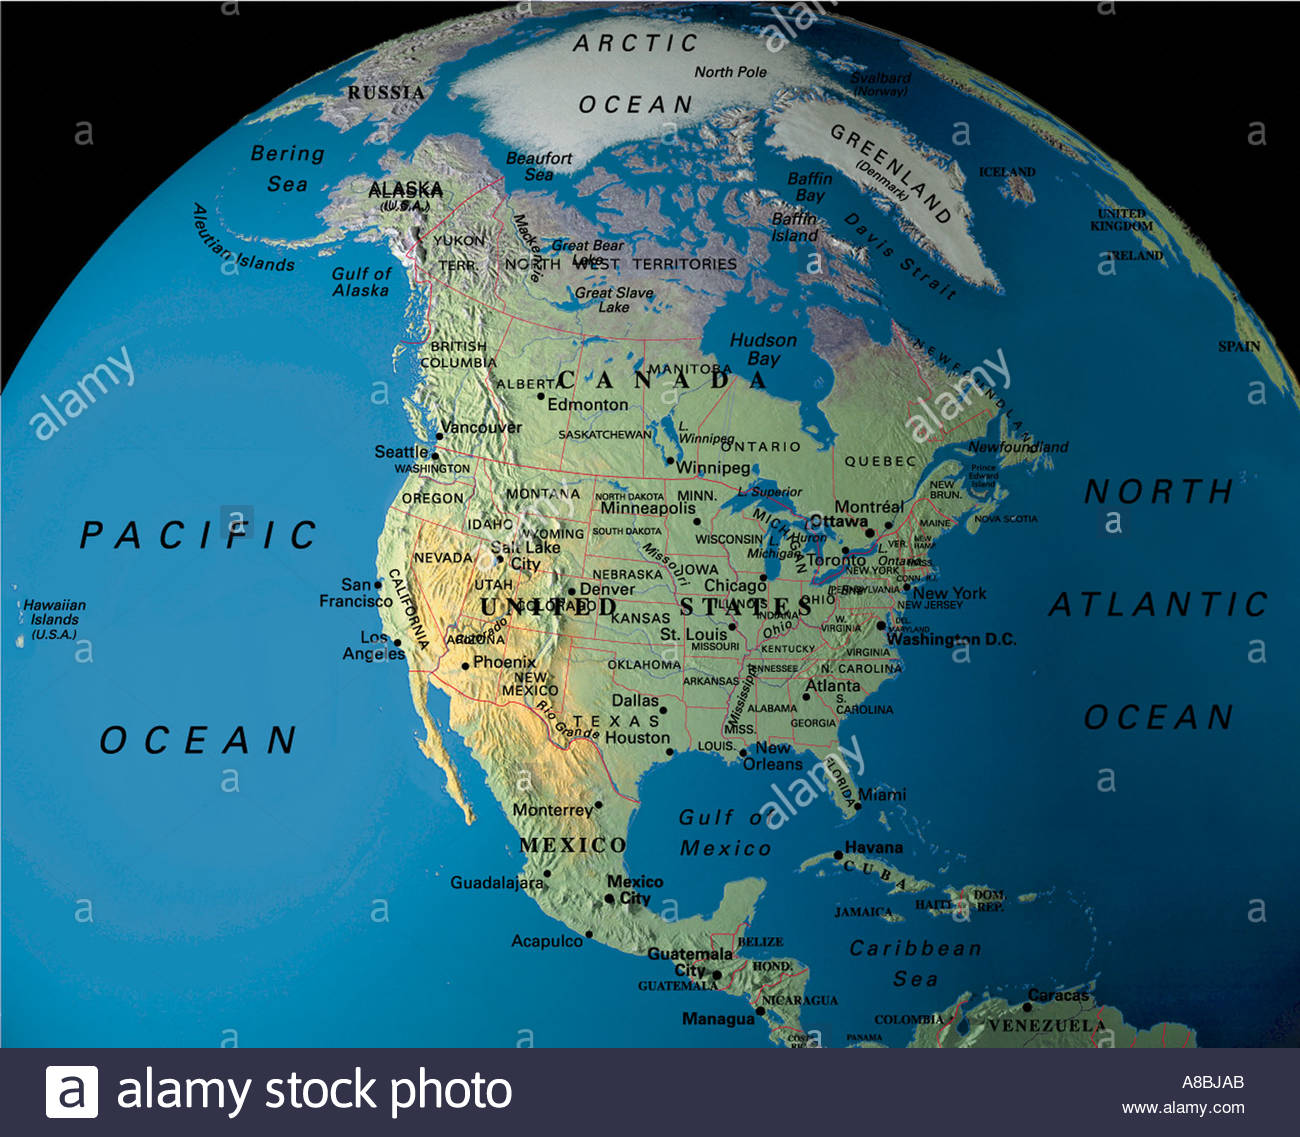 Globe North Amerika USA Canada Mexico Stock Photo Royalty Free - Globe of usa